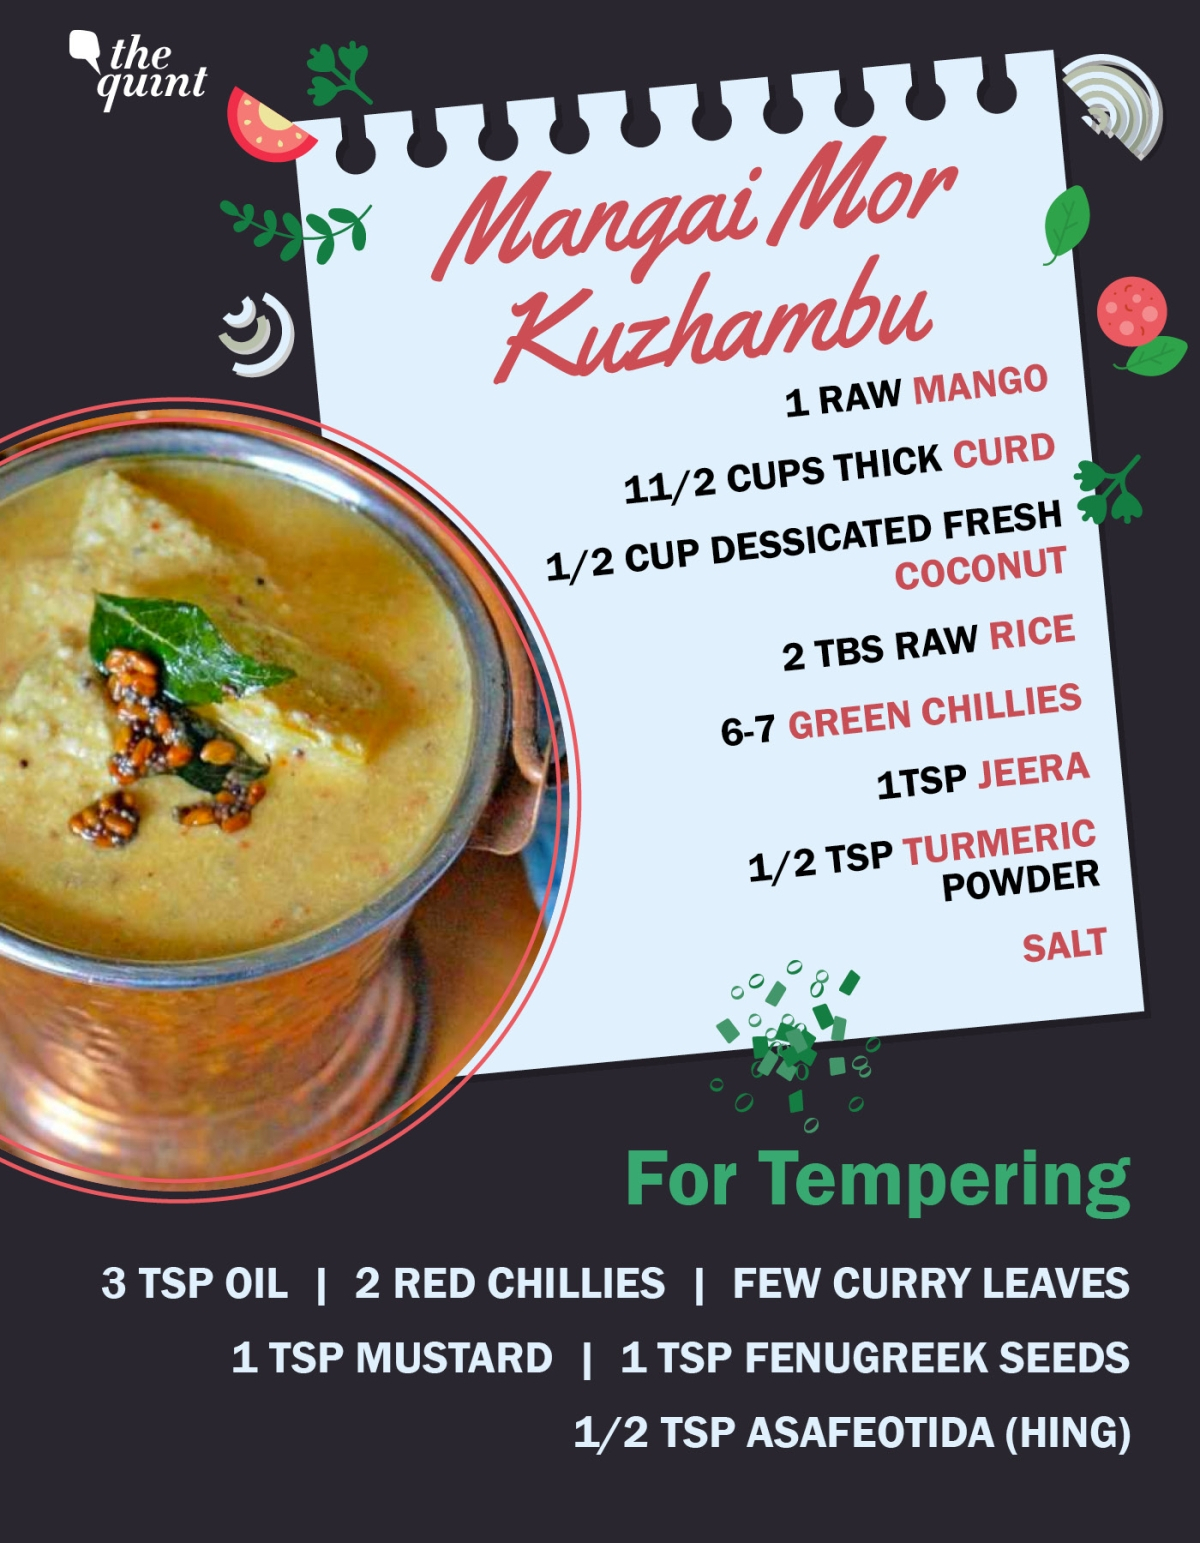 """The <i>mangai mor kuzhambu</i> is a Tamilian summer staple."""" data-reactid=""""339″><figcaption class=merriweather-bold data-reactid=340>The<i>mangai mor kuzhambu</i>is a Tamilian summer staple. (Photo altered by The Quint)</figcaption></figure></div></div><div class=story-article__content__element data-reactid=342><div class=story-article__content__element--text data-reactid=343><p><em><strong>Method:</strong></em><em>In a thick bottom pan, cook cubed mango with just a little water. Do not over cook as it may become mushy. Add turmeric & a little salt while it cooks. In a blender, combine coconut,green chillies, jeera & soaked rice to make a smooth paste. Take the curd in a vessel & beat it without adding water. Combine the ground paste to the curd and mix well. When the mangoes are cooked, add this curd and coconut mix to it. Add salt as per taste and cook on medium flame. Do not boil it. When it raises up, switch off the gas. In another pan, heat oil & add mustard seeds. When it splutters, add the remaining ingredients for tempering & pour it over the curry. Serve it with rice and papadam.</em></p></div></div><div class=story-article__content__element data-reactid=344><div class=story-article__content__element--text data-reactid=345><p>The lemon rice gets a mango makeover with<em>mavinakayi chitranna</em>in Karnataka, while in Kerala's Thrissur, the<em>pachmanga</em><em>meen</em>curry is a mean thing.</p></div></div><div class=story-article__content__element data-reactid=346><div class=story-article__content__element--blockquote data-reactid=347><blockquote data-reactid=348><div class="""